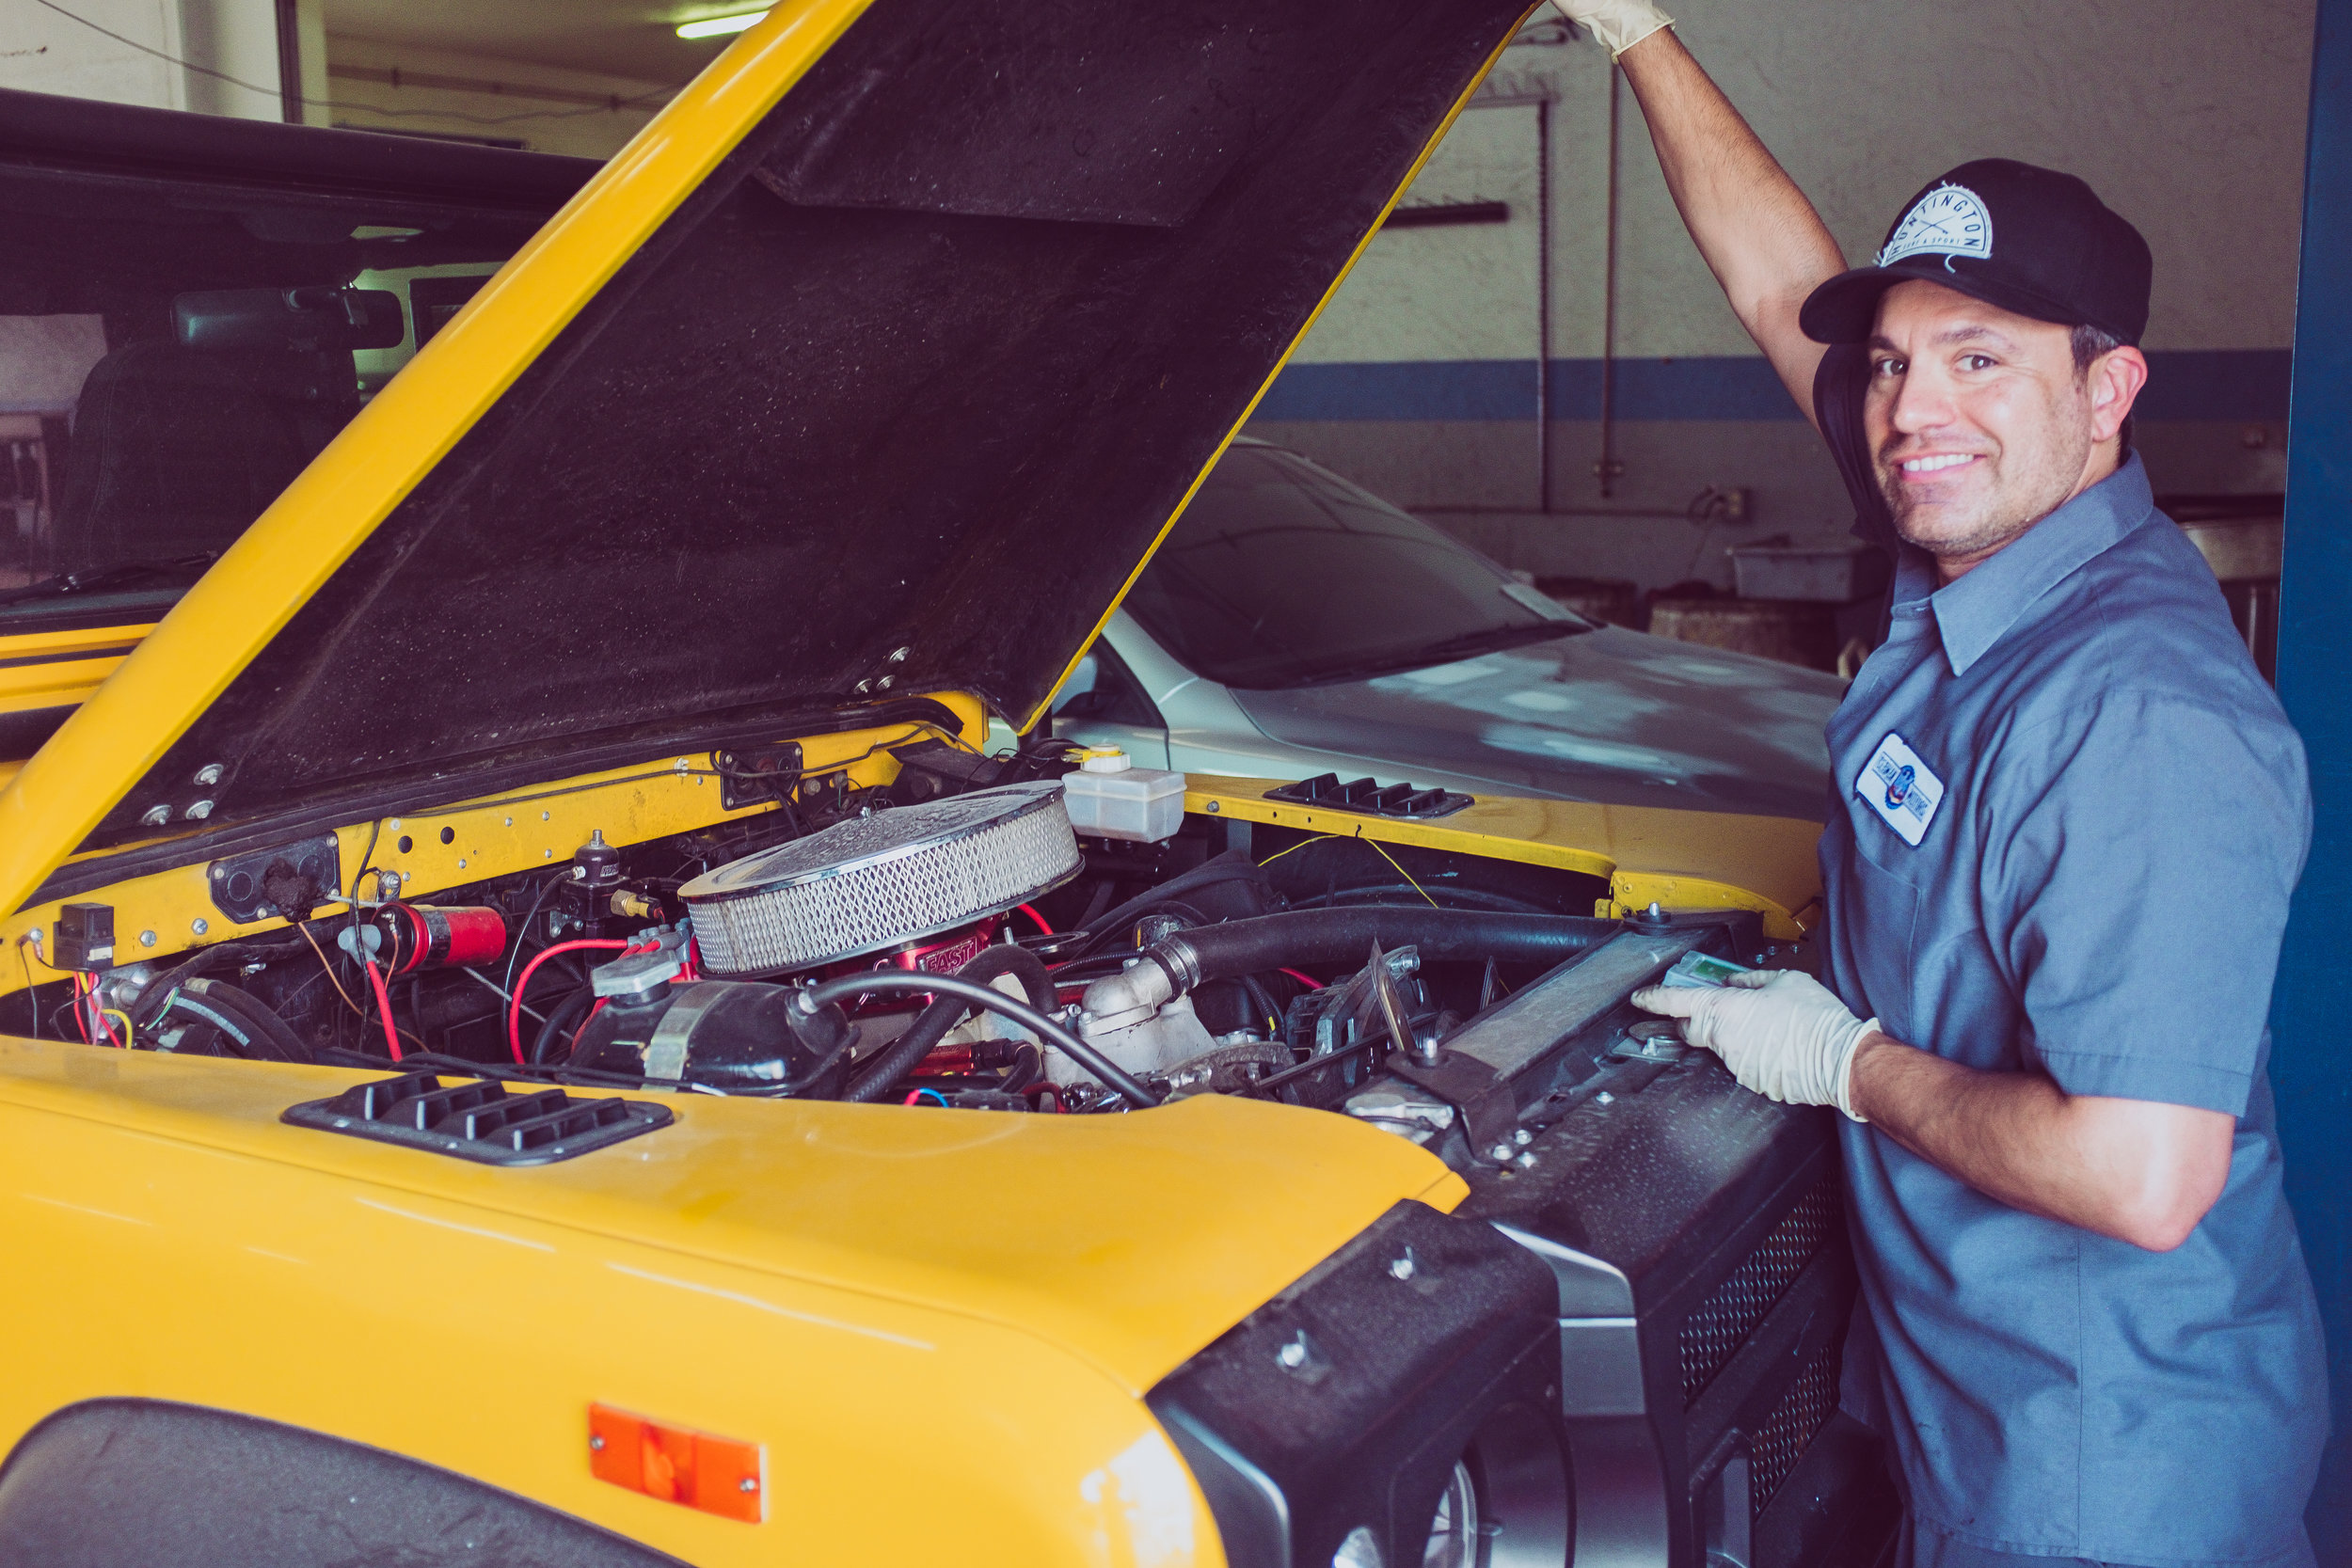 """We pay attention to the """"check engine"""" light on our car -but when it comes to our mental health, what """"lights"""" indicate we need a tune-up? - By Audrey Hardin, LPC"""